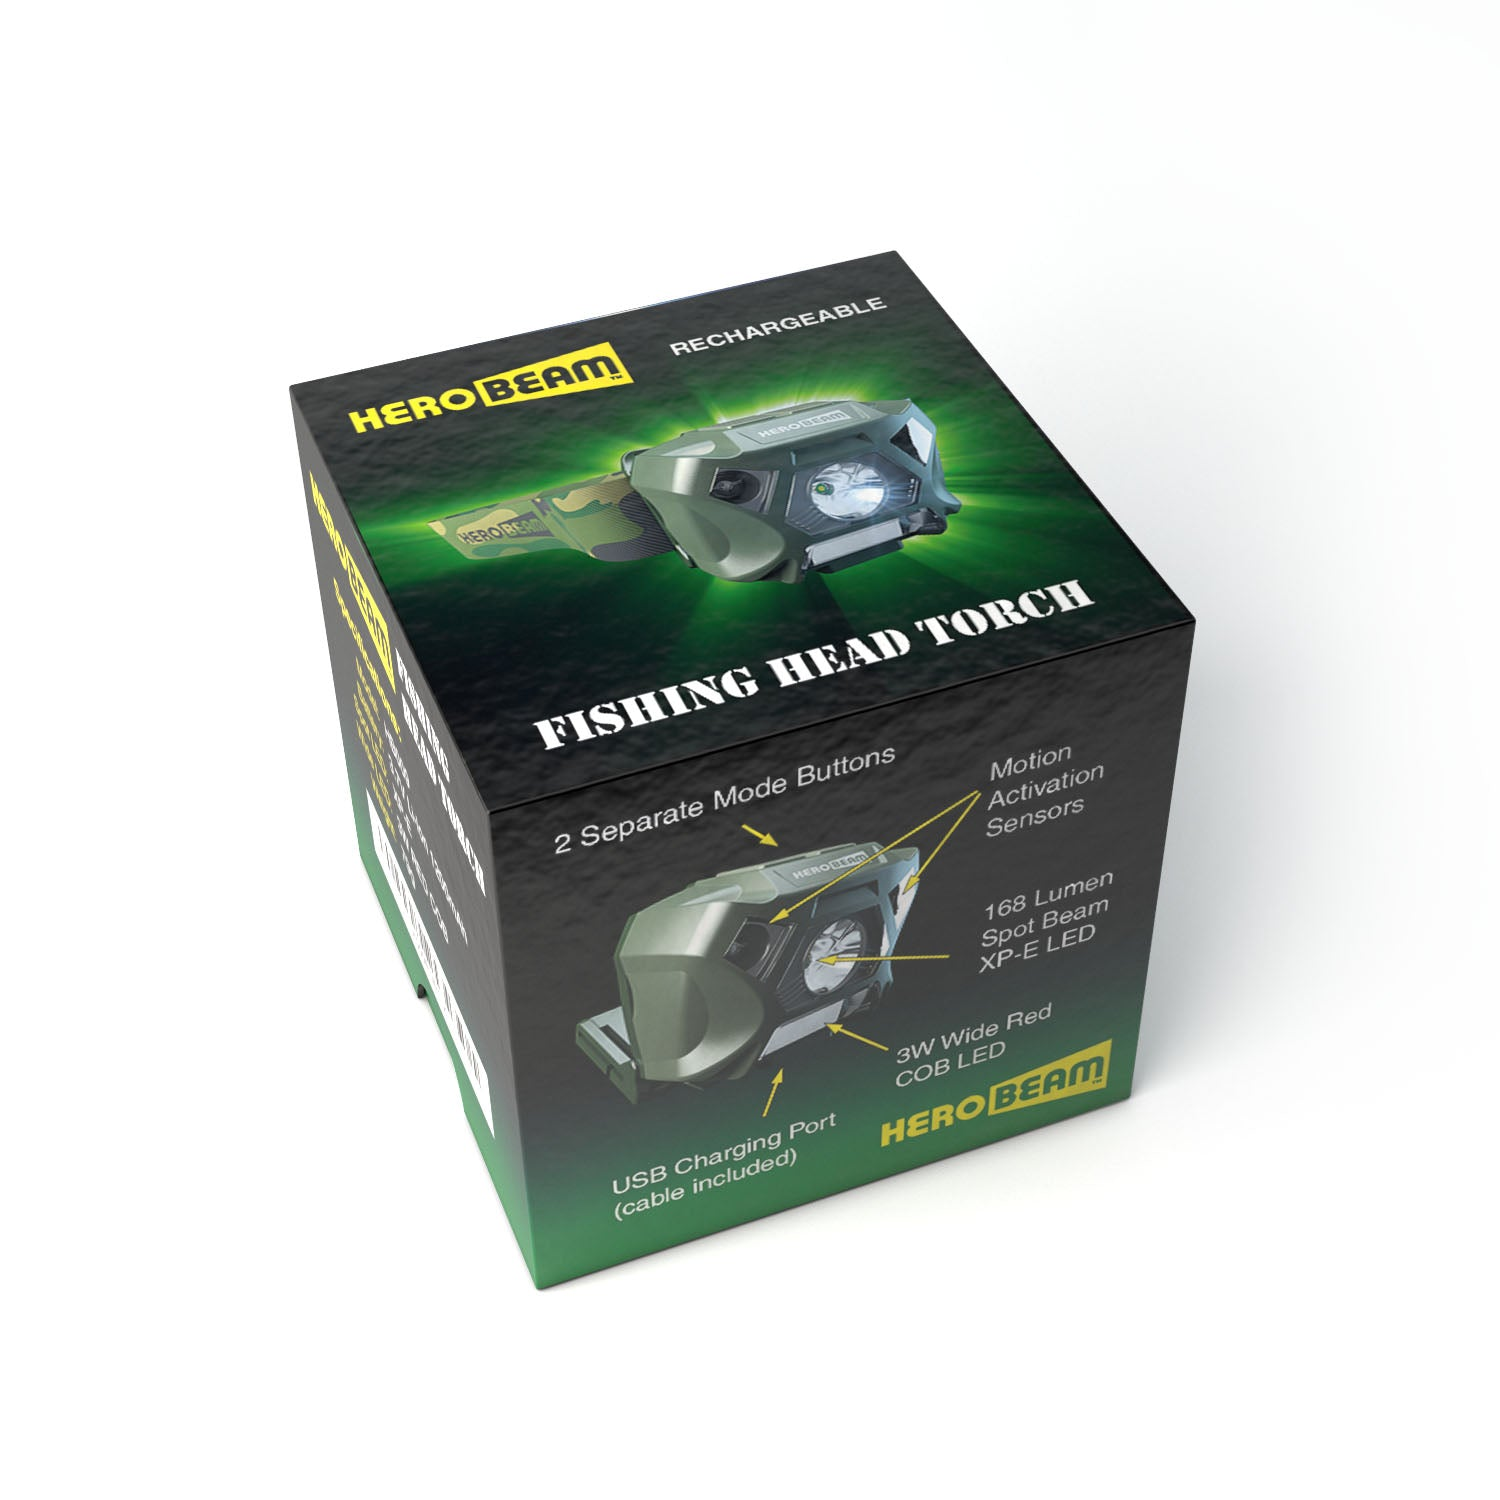 HeroBeam® Fishing Headlamp